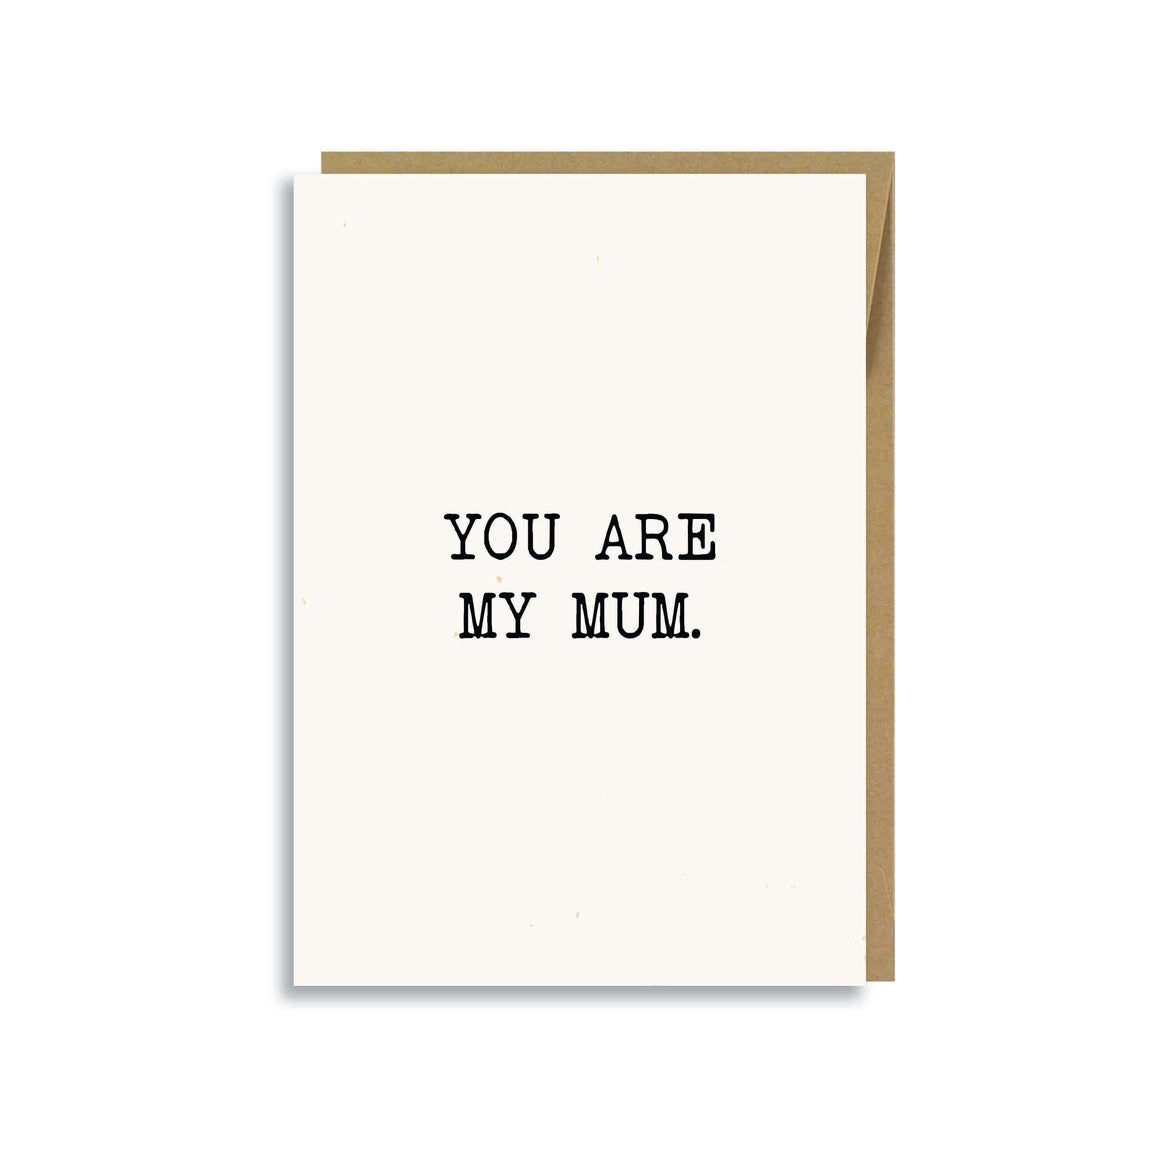 YOU ARE MY MUM (MOTHER'S DAY) CARD.